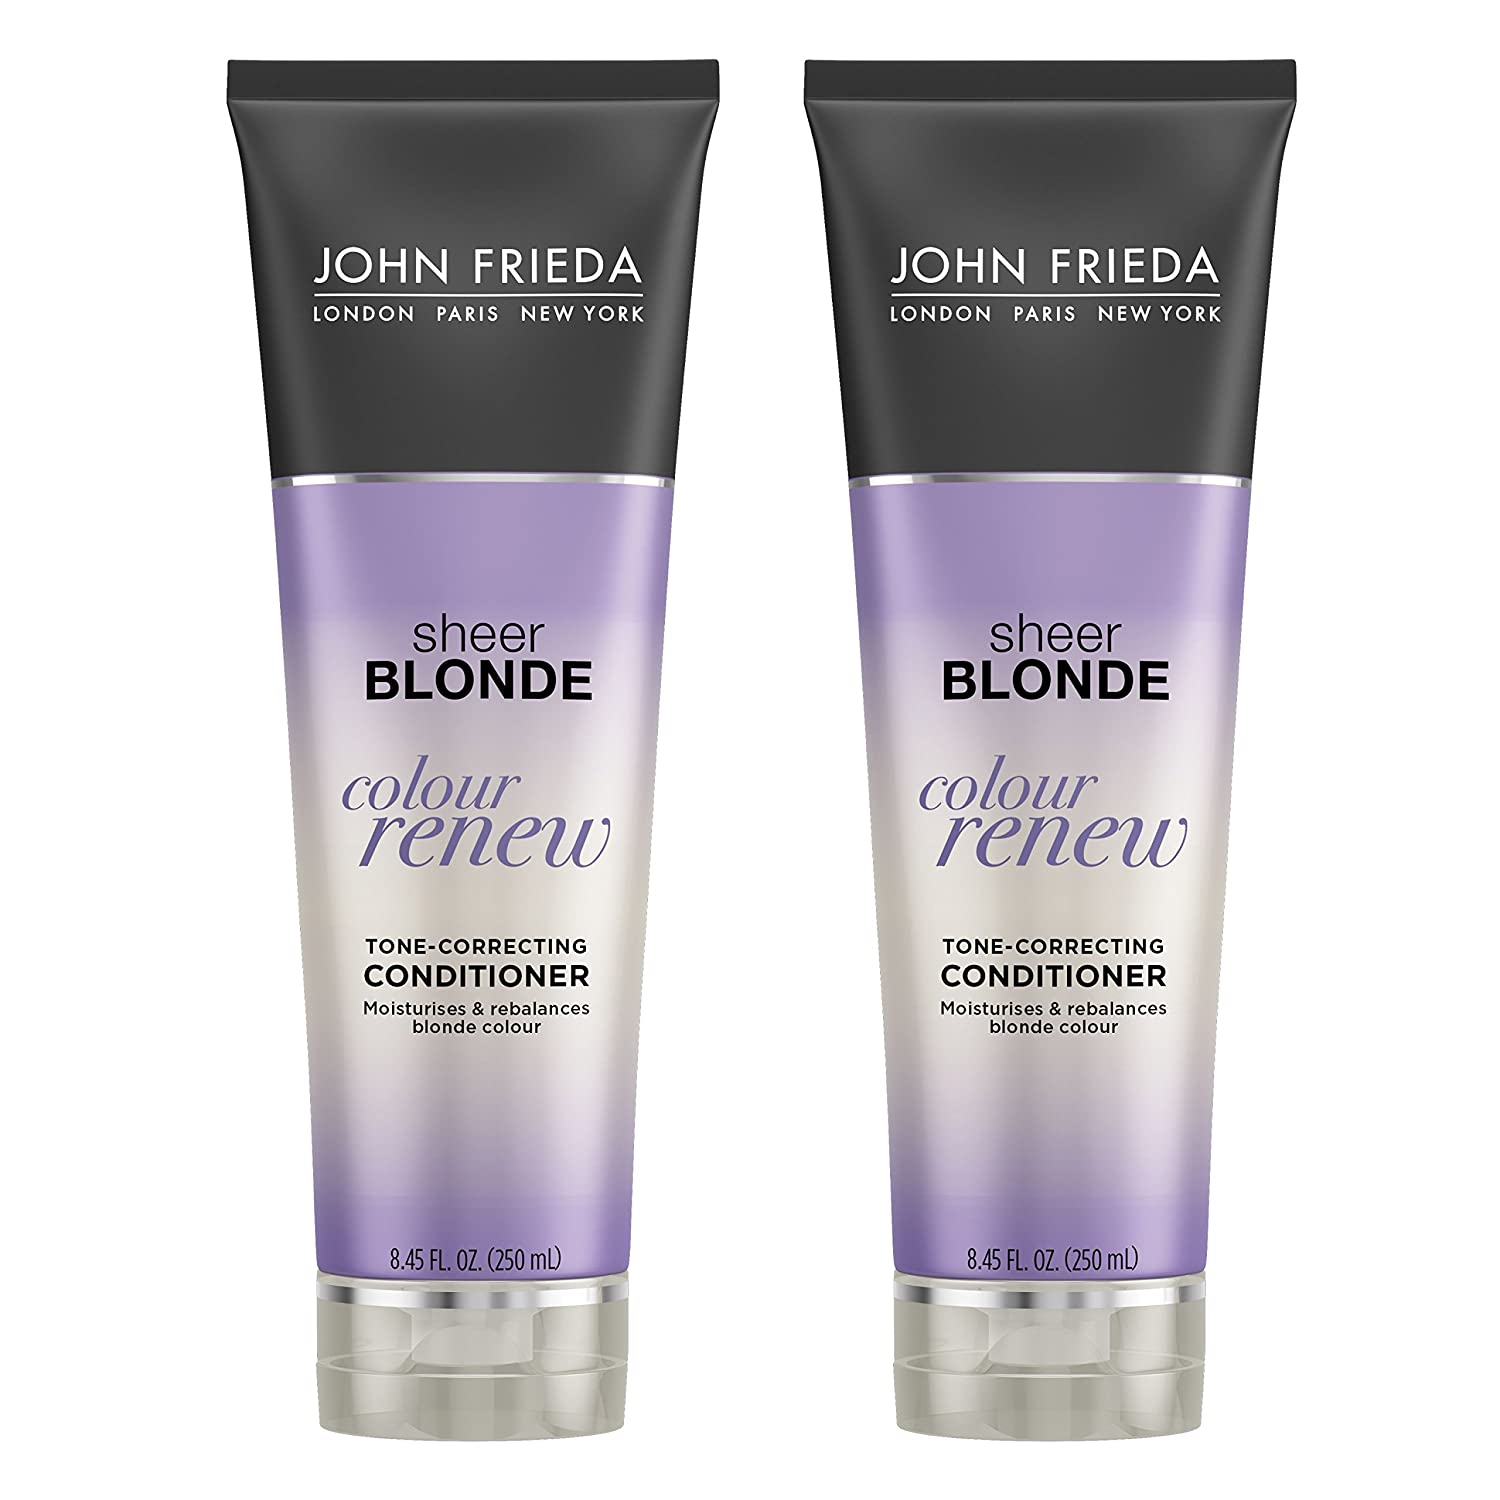 John Frieda Sheer Blonde Color Renew Purple Conditioner Tone Correcting Conditioner Helps Moisturize And Rebalance Blonde Color 8 45 Ounce 2 Pack Standard Hair Conditioners Beauty